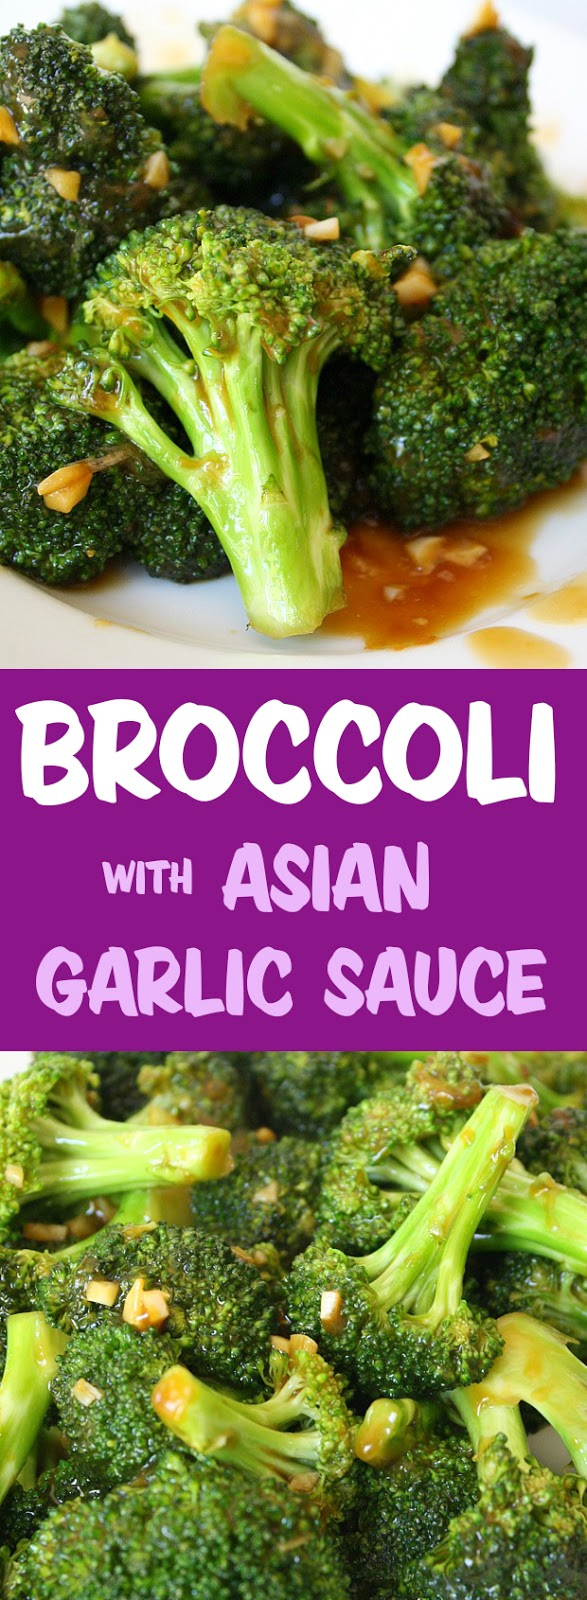 Photo collage of broccoli with Asian garlic sauce